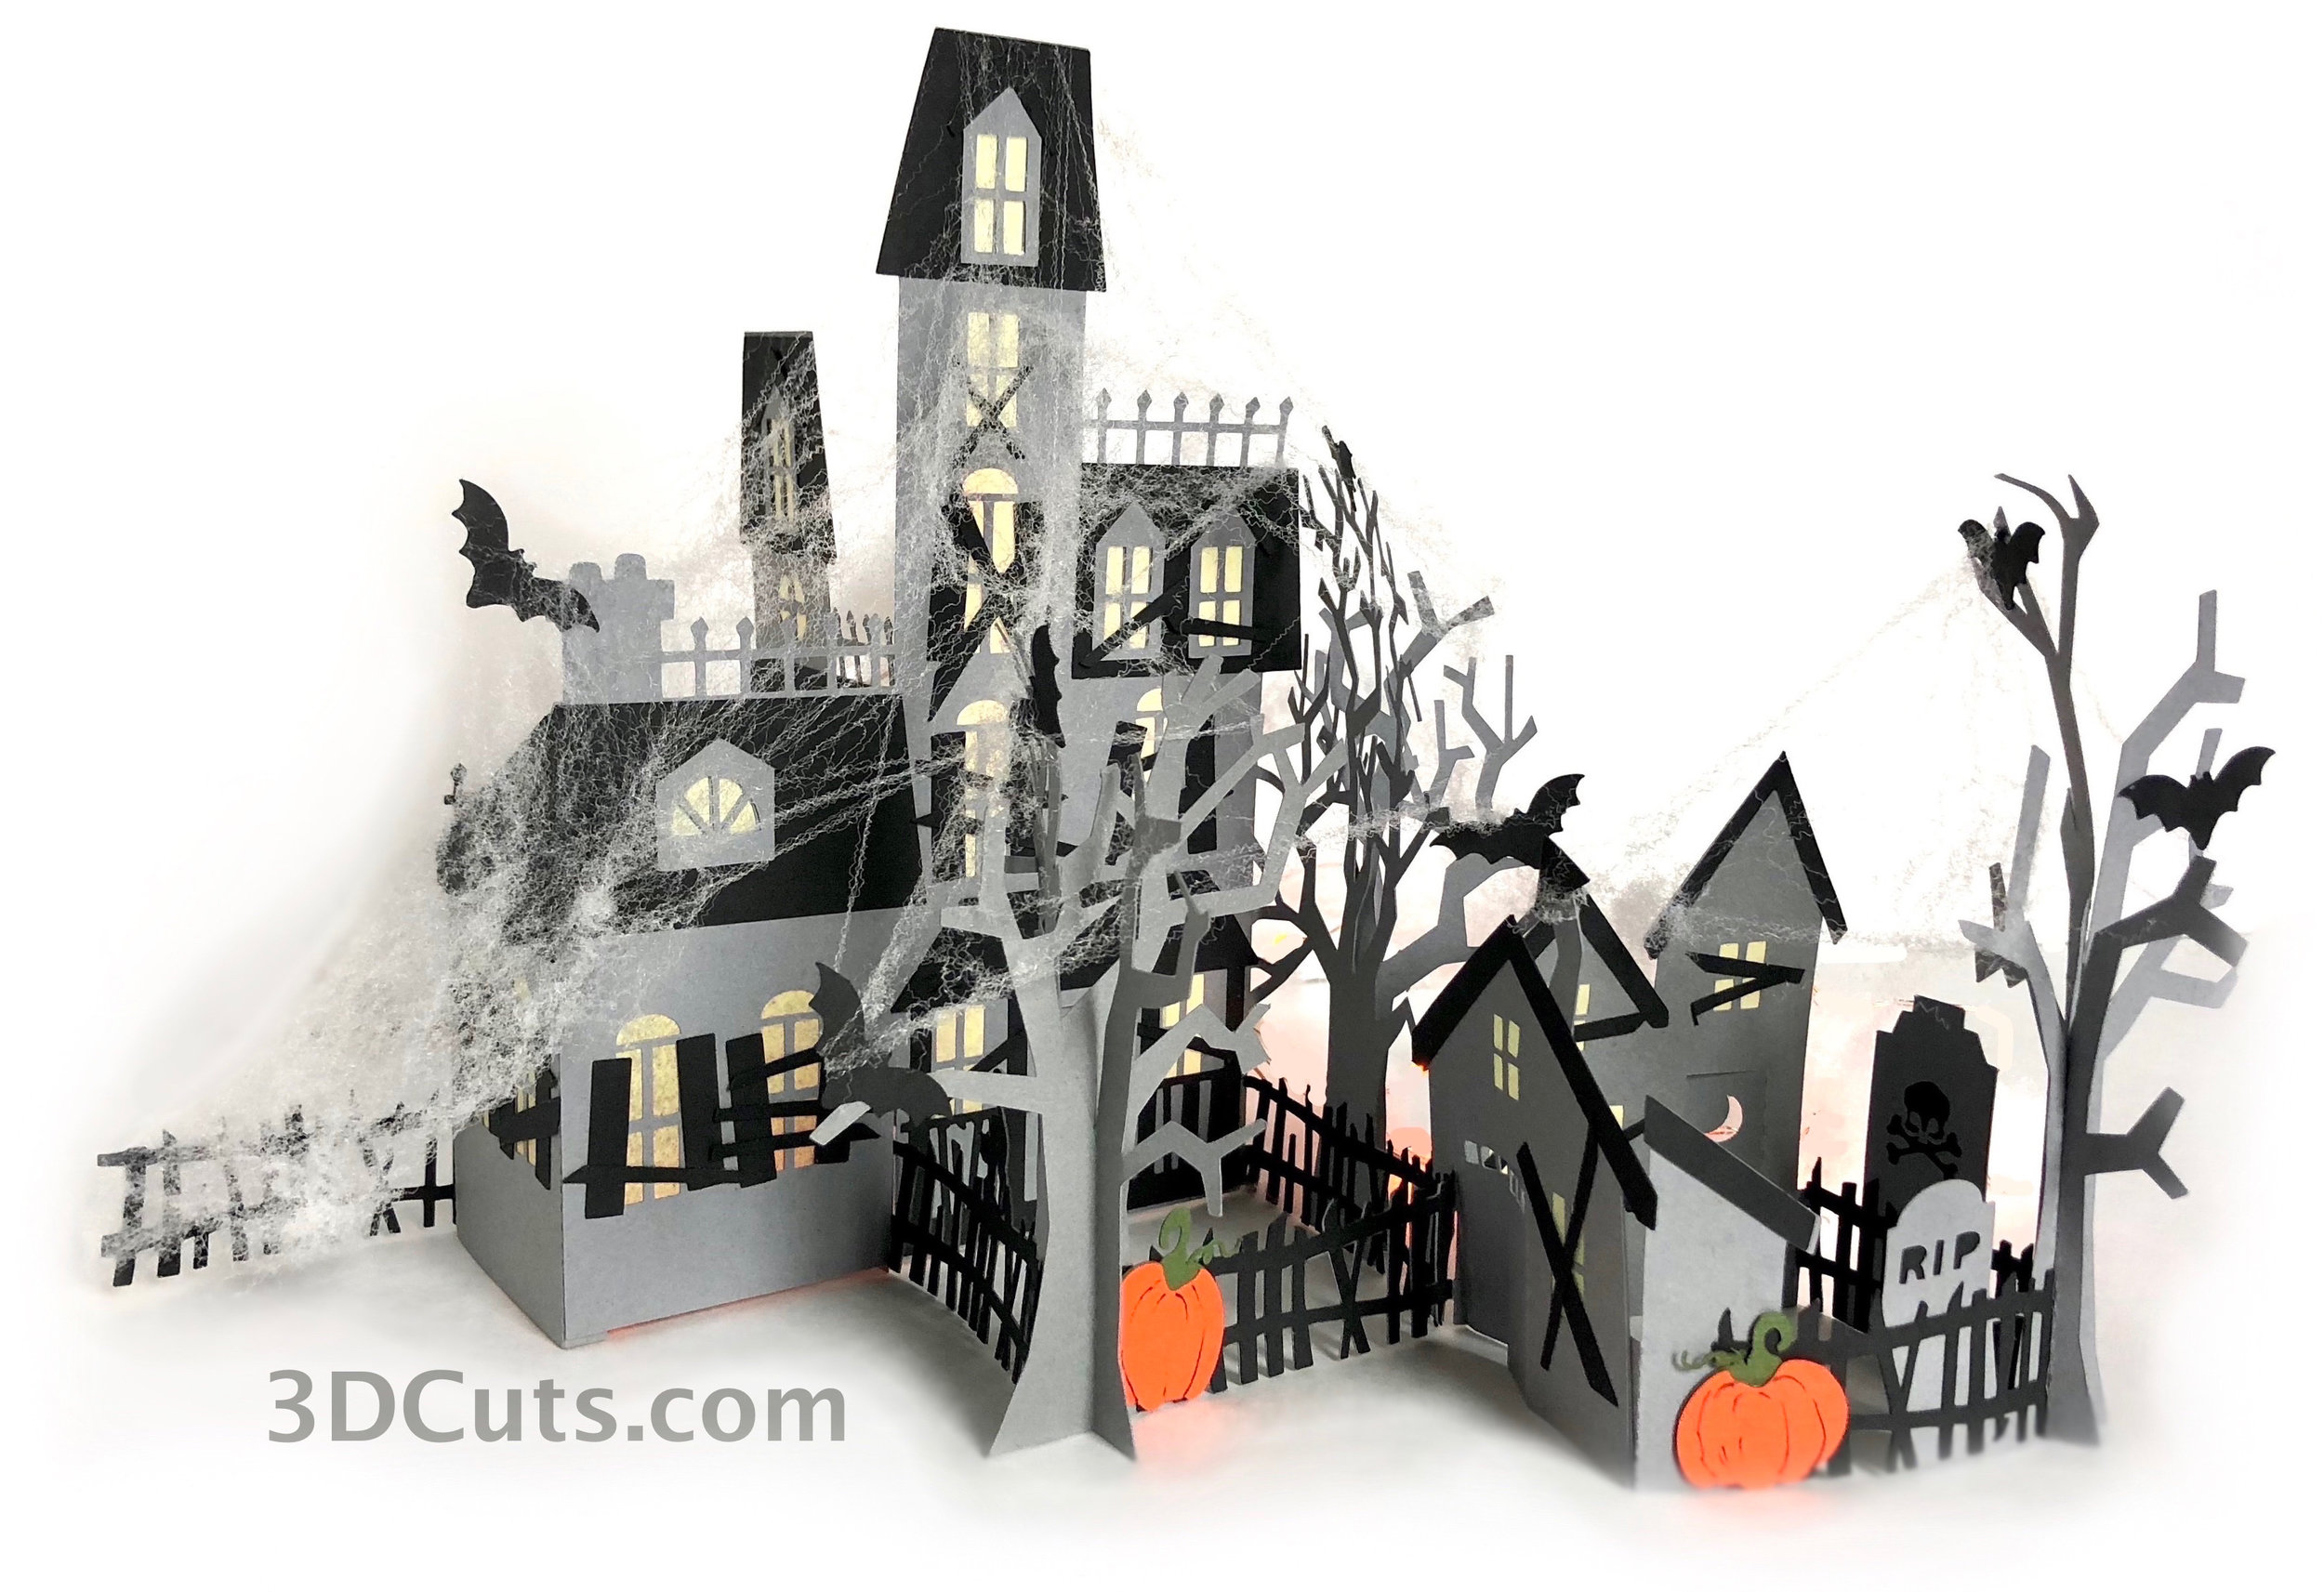 Zig Zag HauntedHouse Zig Zag , ©3DCuts.com, Marji Roy, 3D cutting files in .svg, .dxf, and .pdf formats for use with Silhouette, Cricut and other cutting machines, paper crafting files